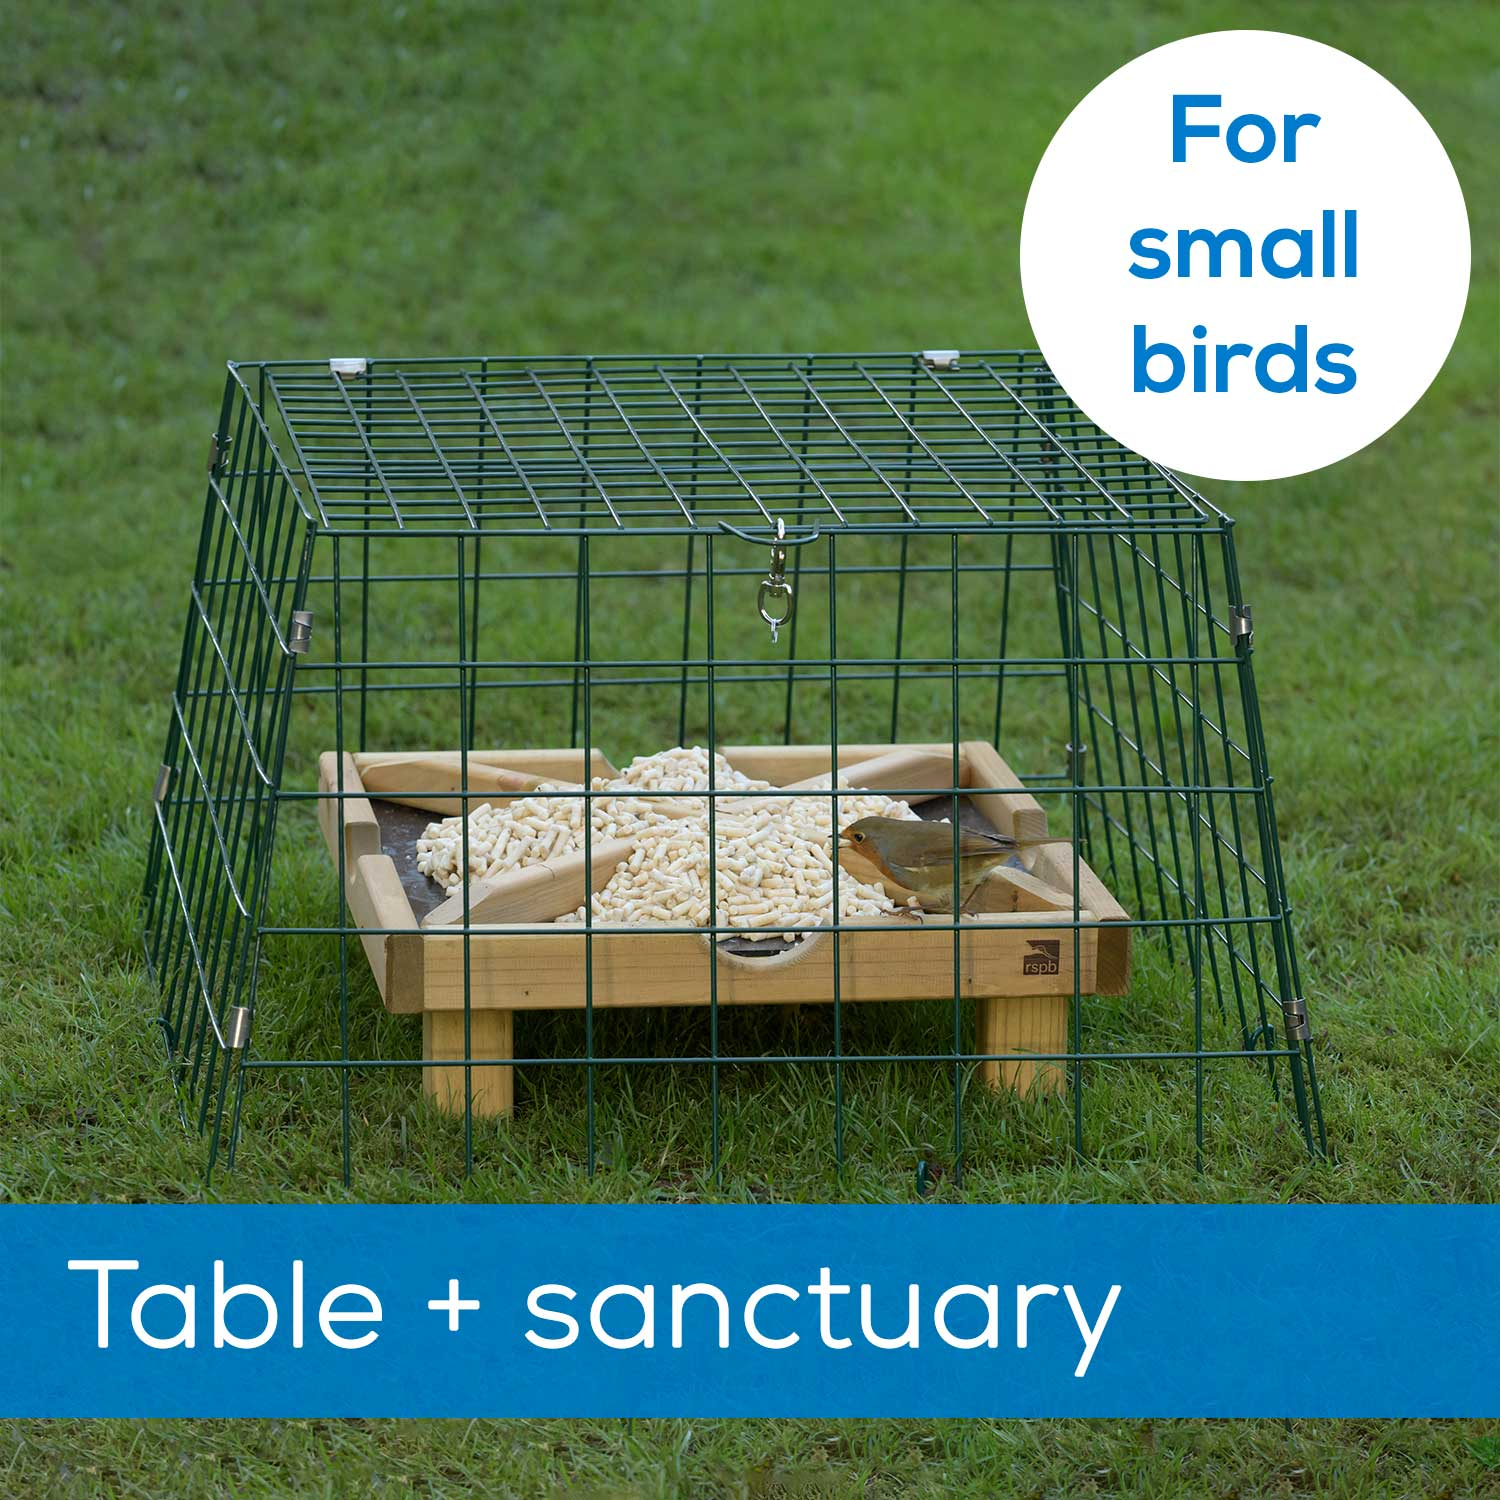 Ground feeding table plus Flat-topped wide mesh sanctuary - New design product photo